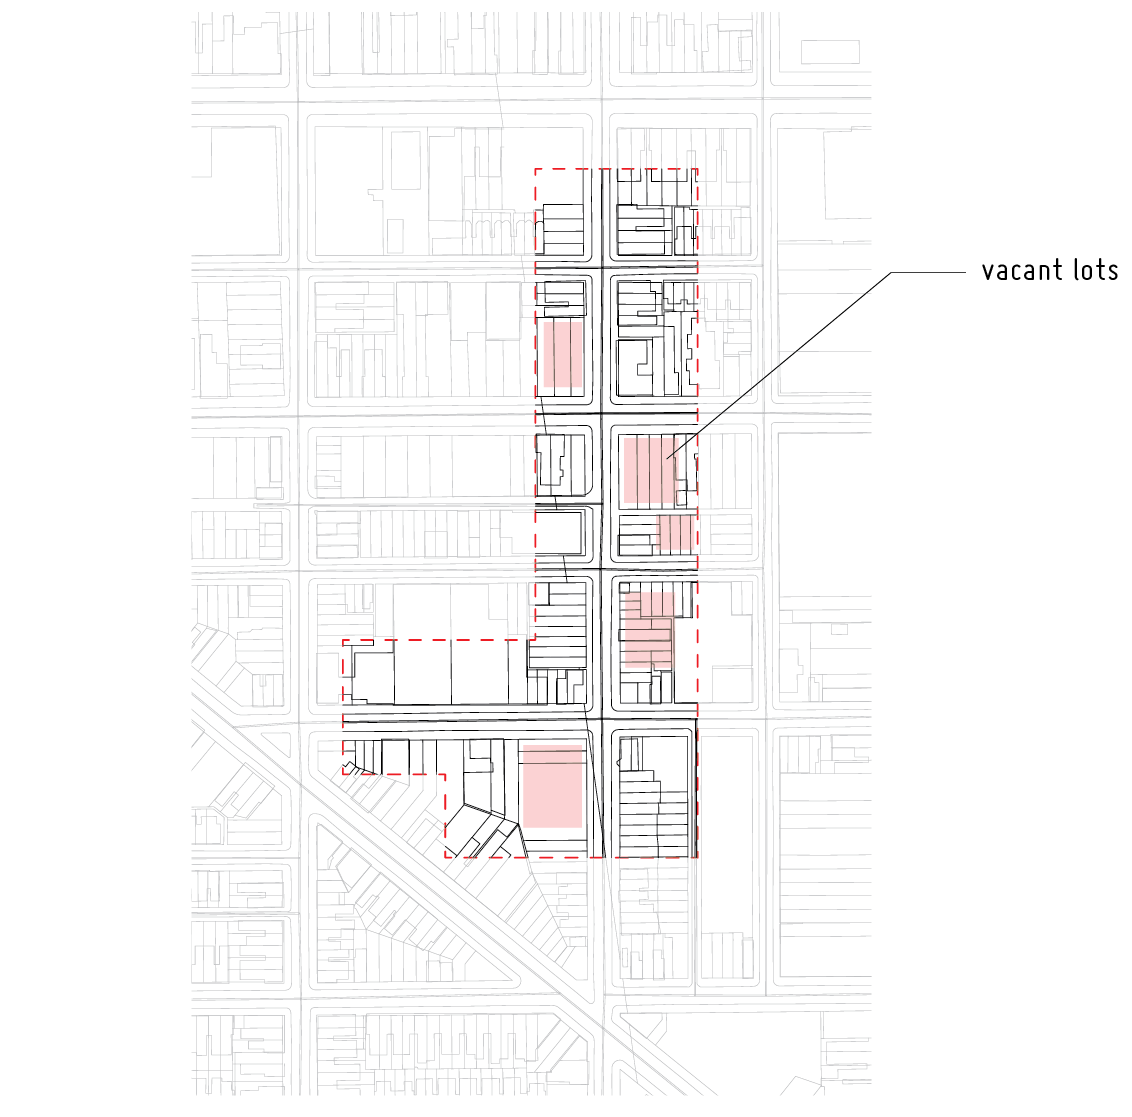 perimeter of targeted strip and vacant lots for potential intervention